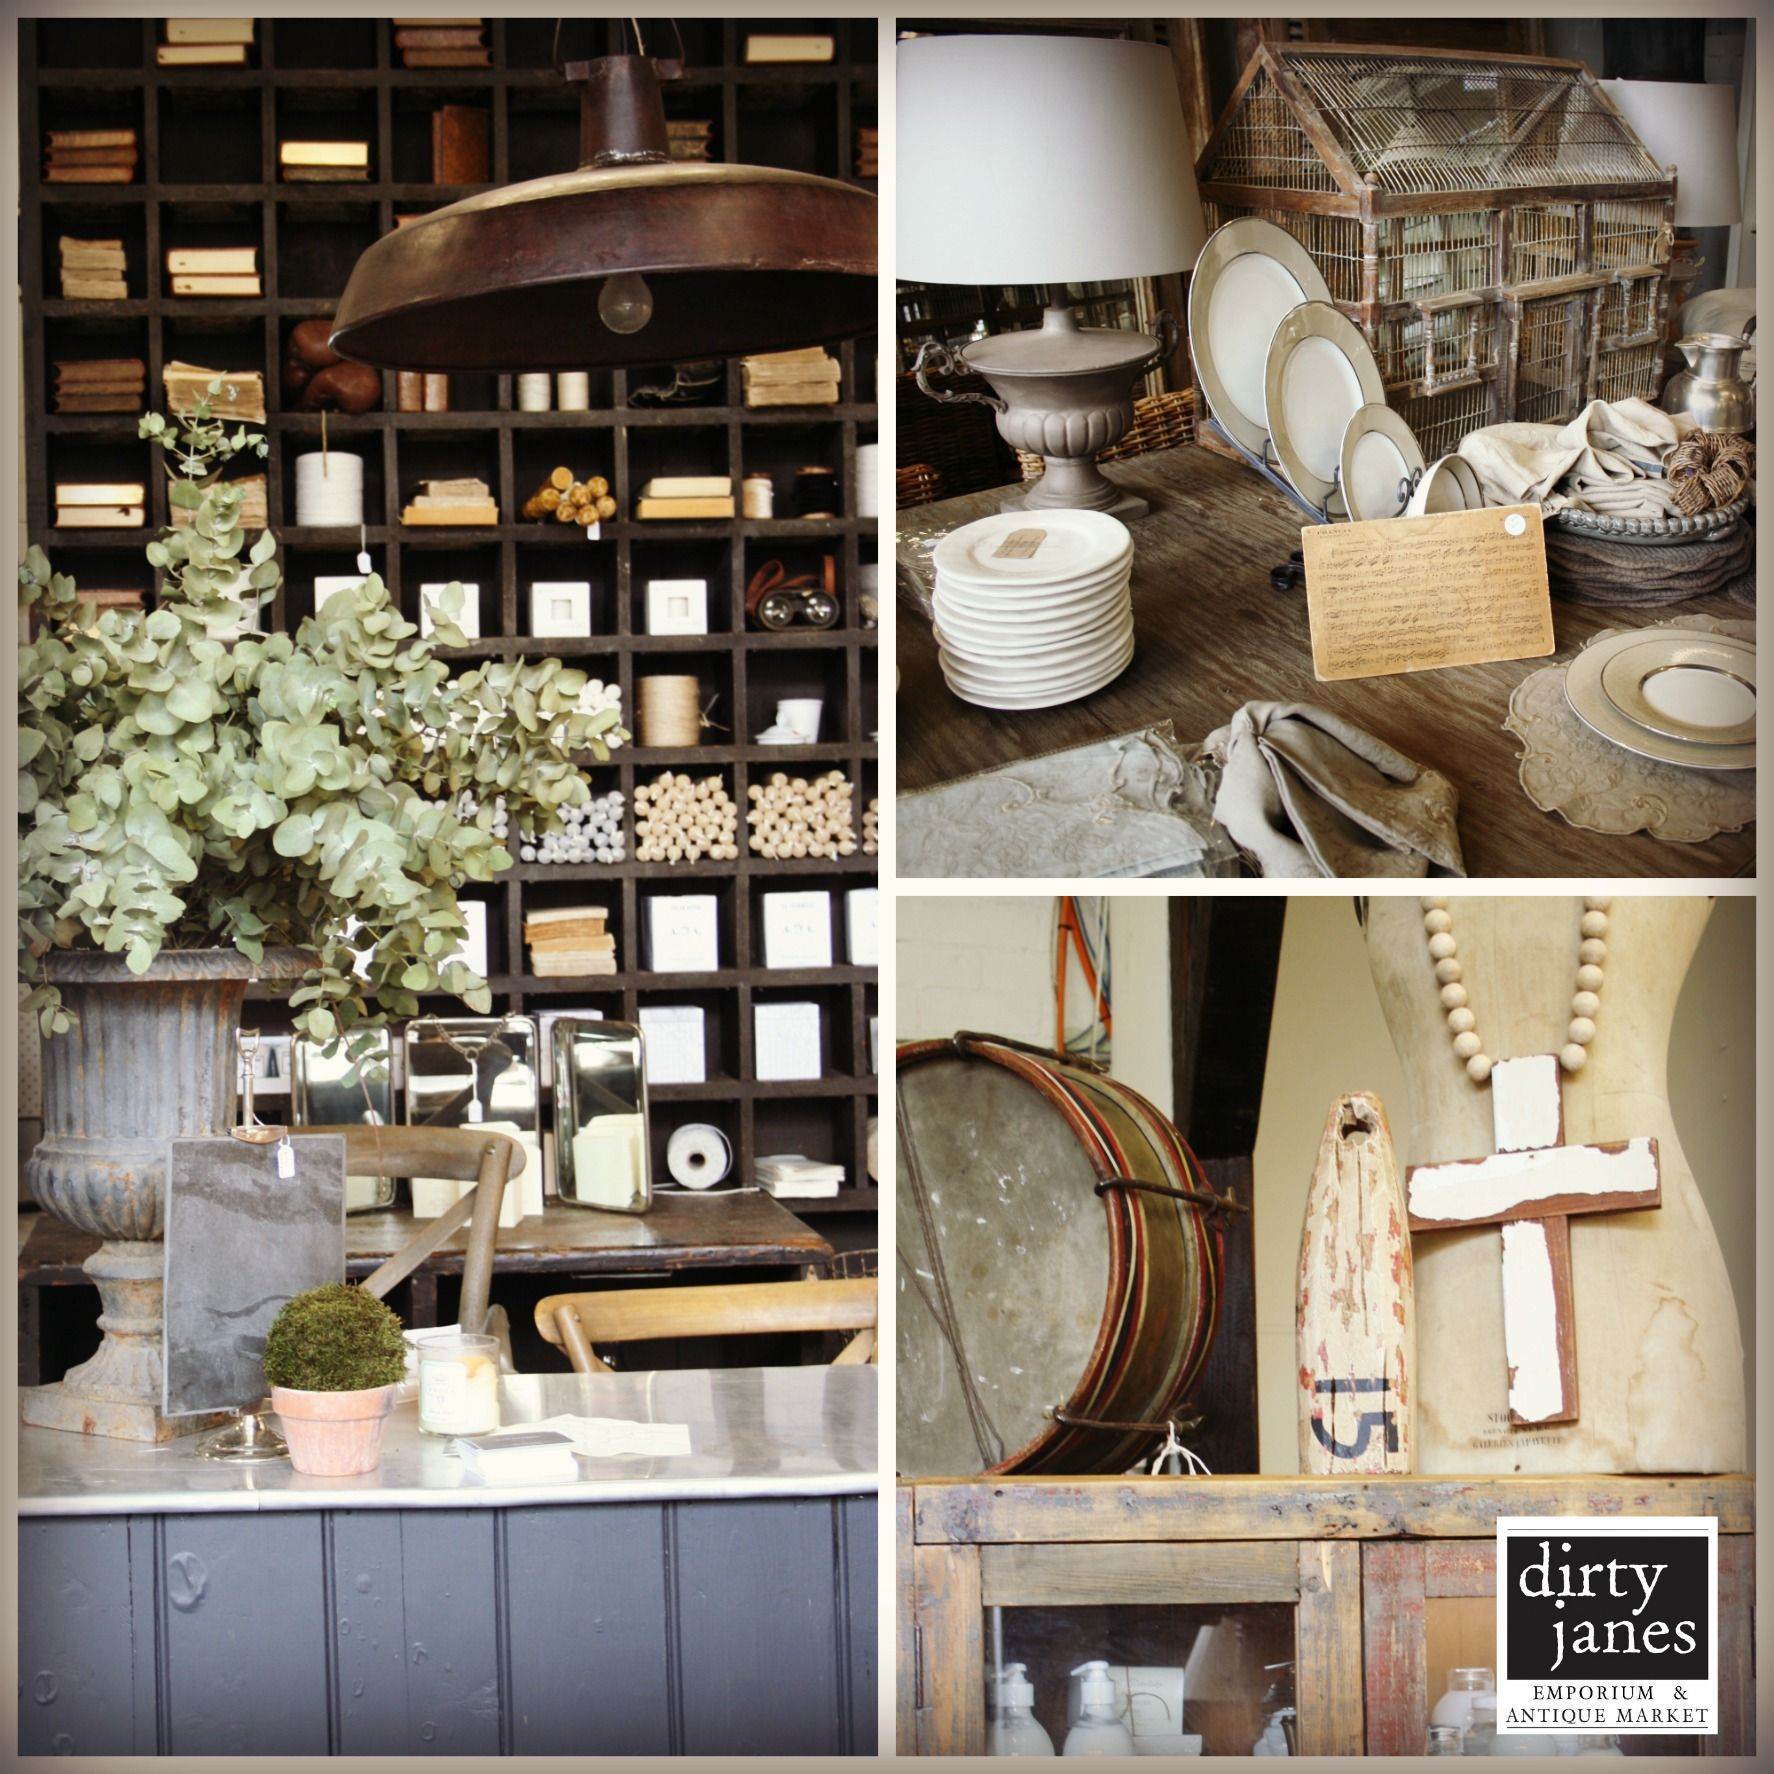 French Country Vignette - a must visit at Dirty Janes Emporium